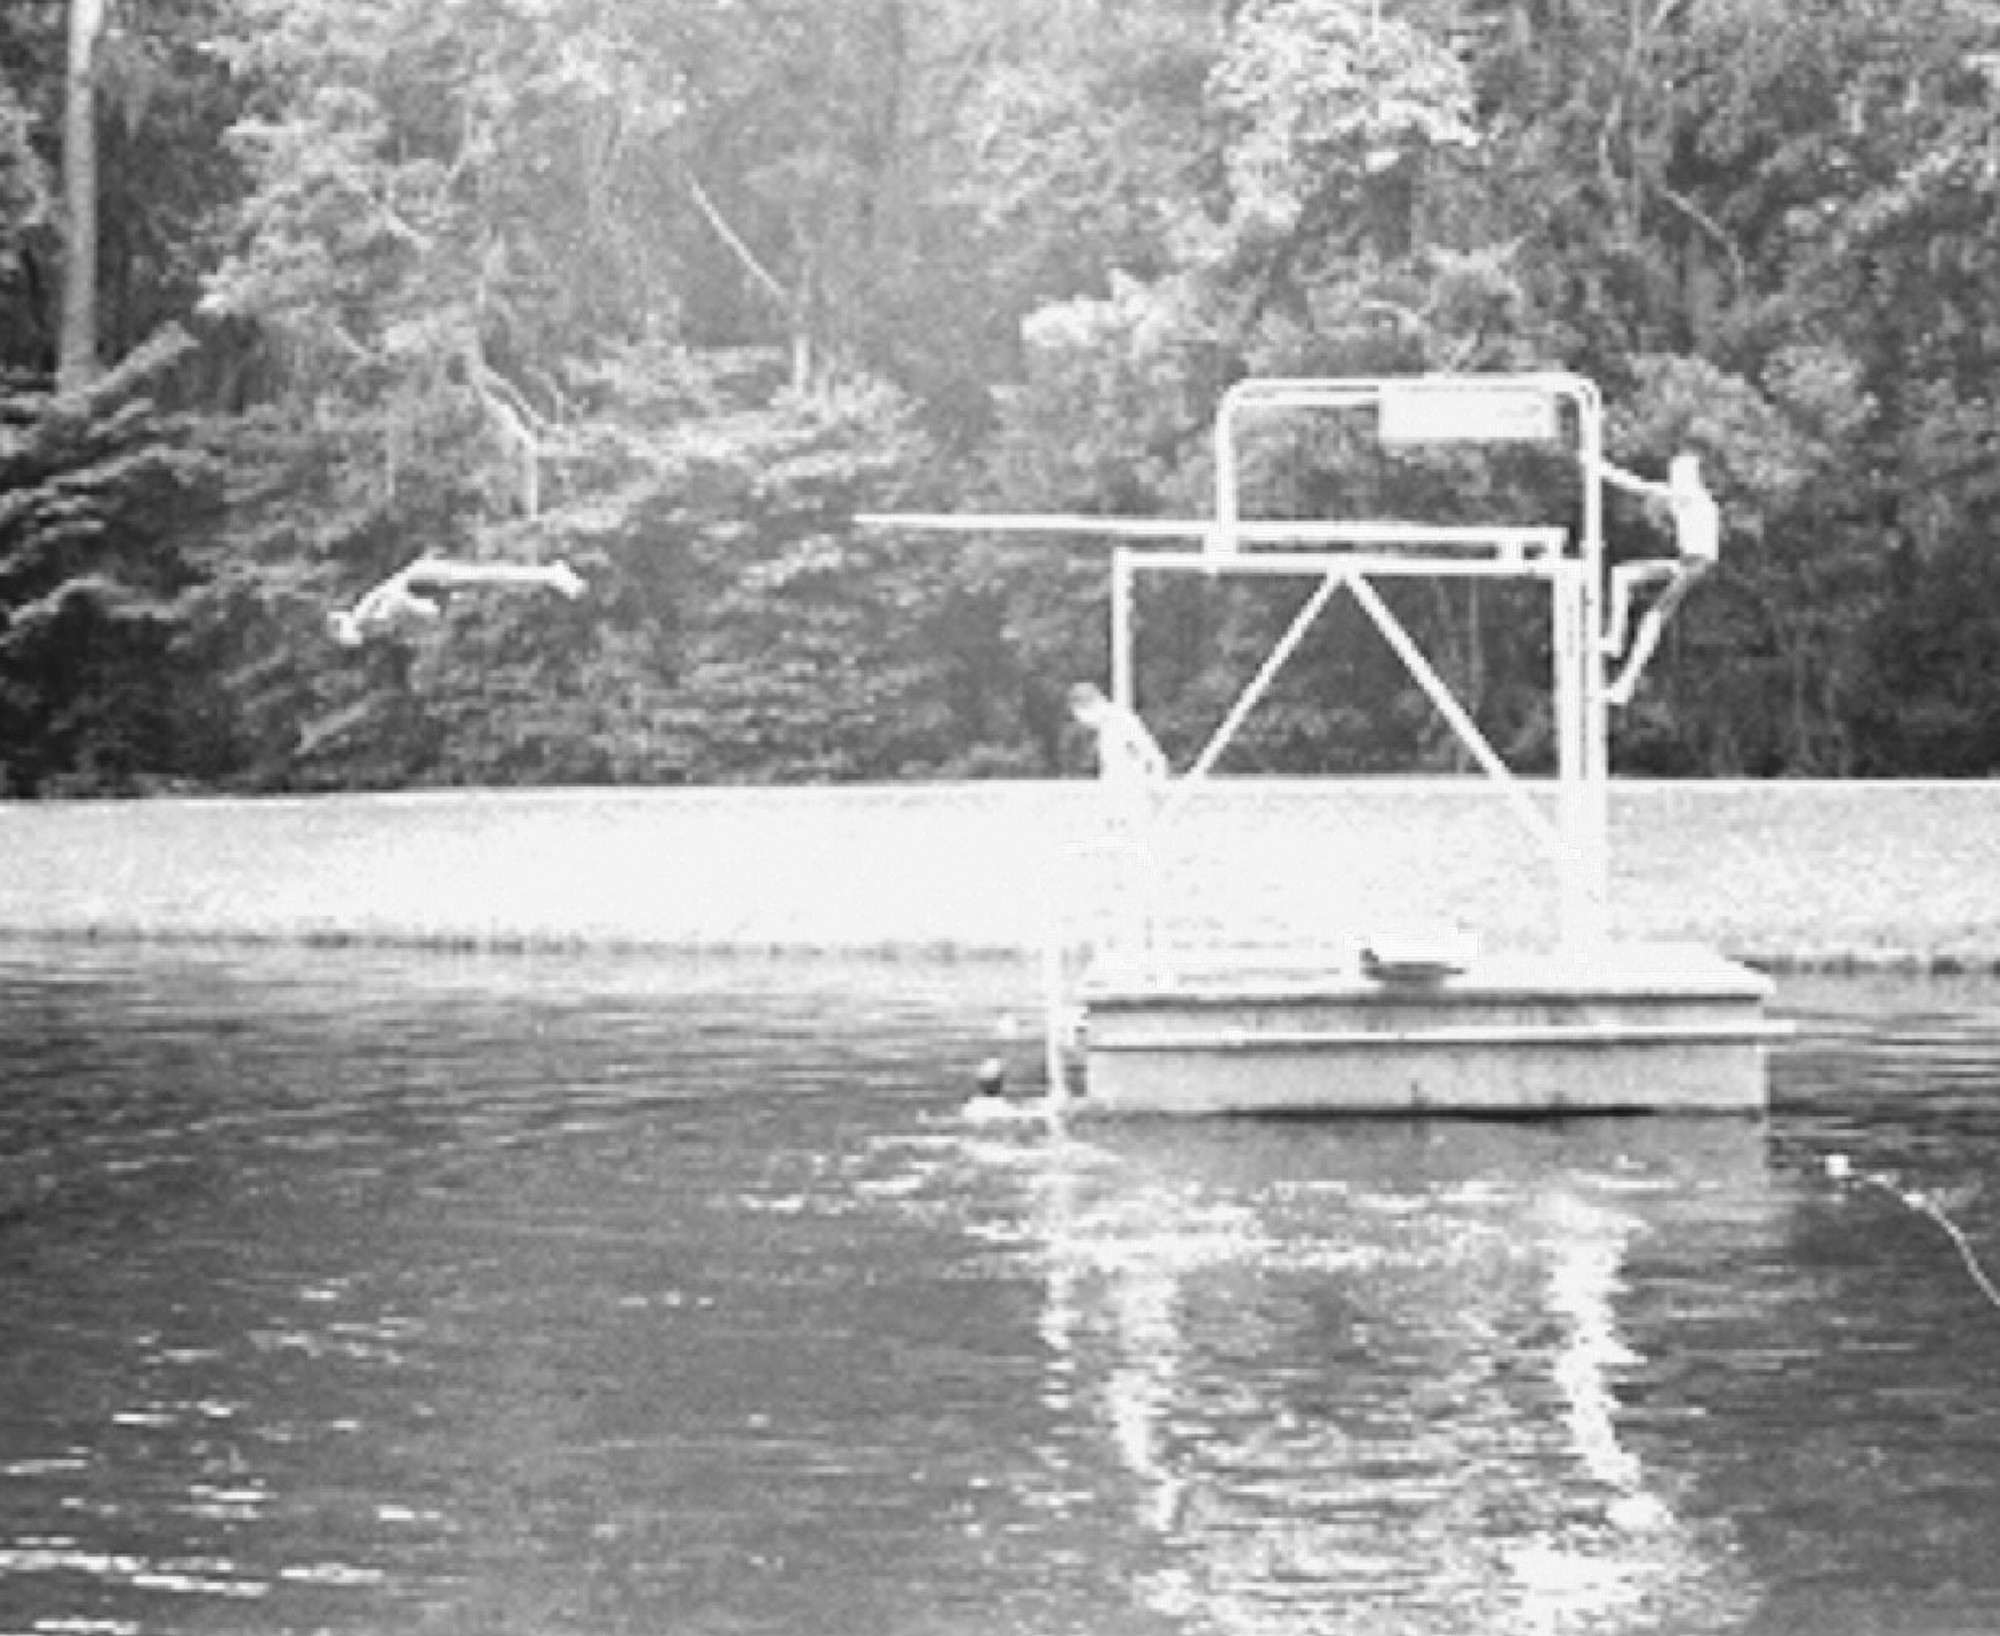 A diving platform once added to the swimming options at Poinsett State Park.